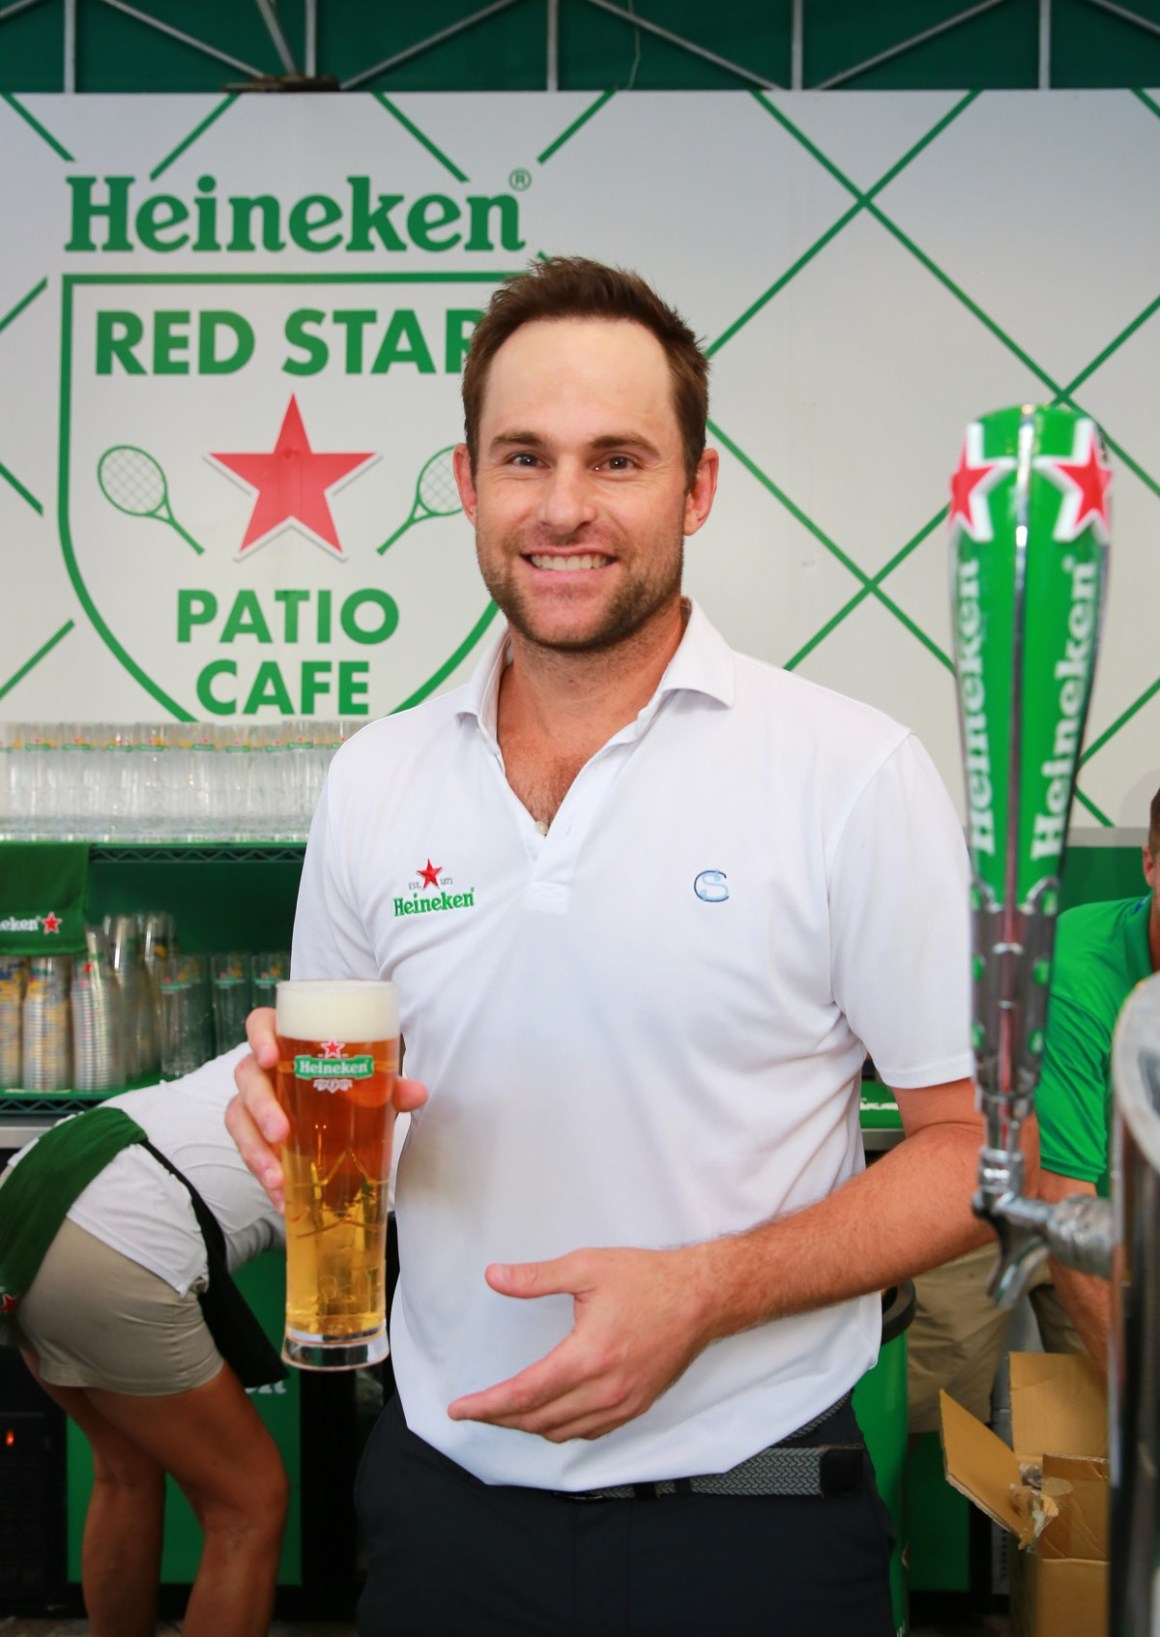 A View from the Heineken Red Star Patio Cafe during the U.S. Open